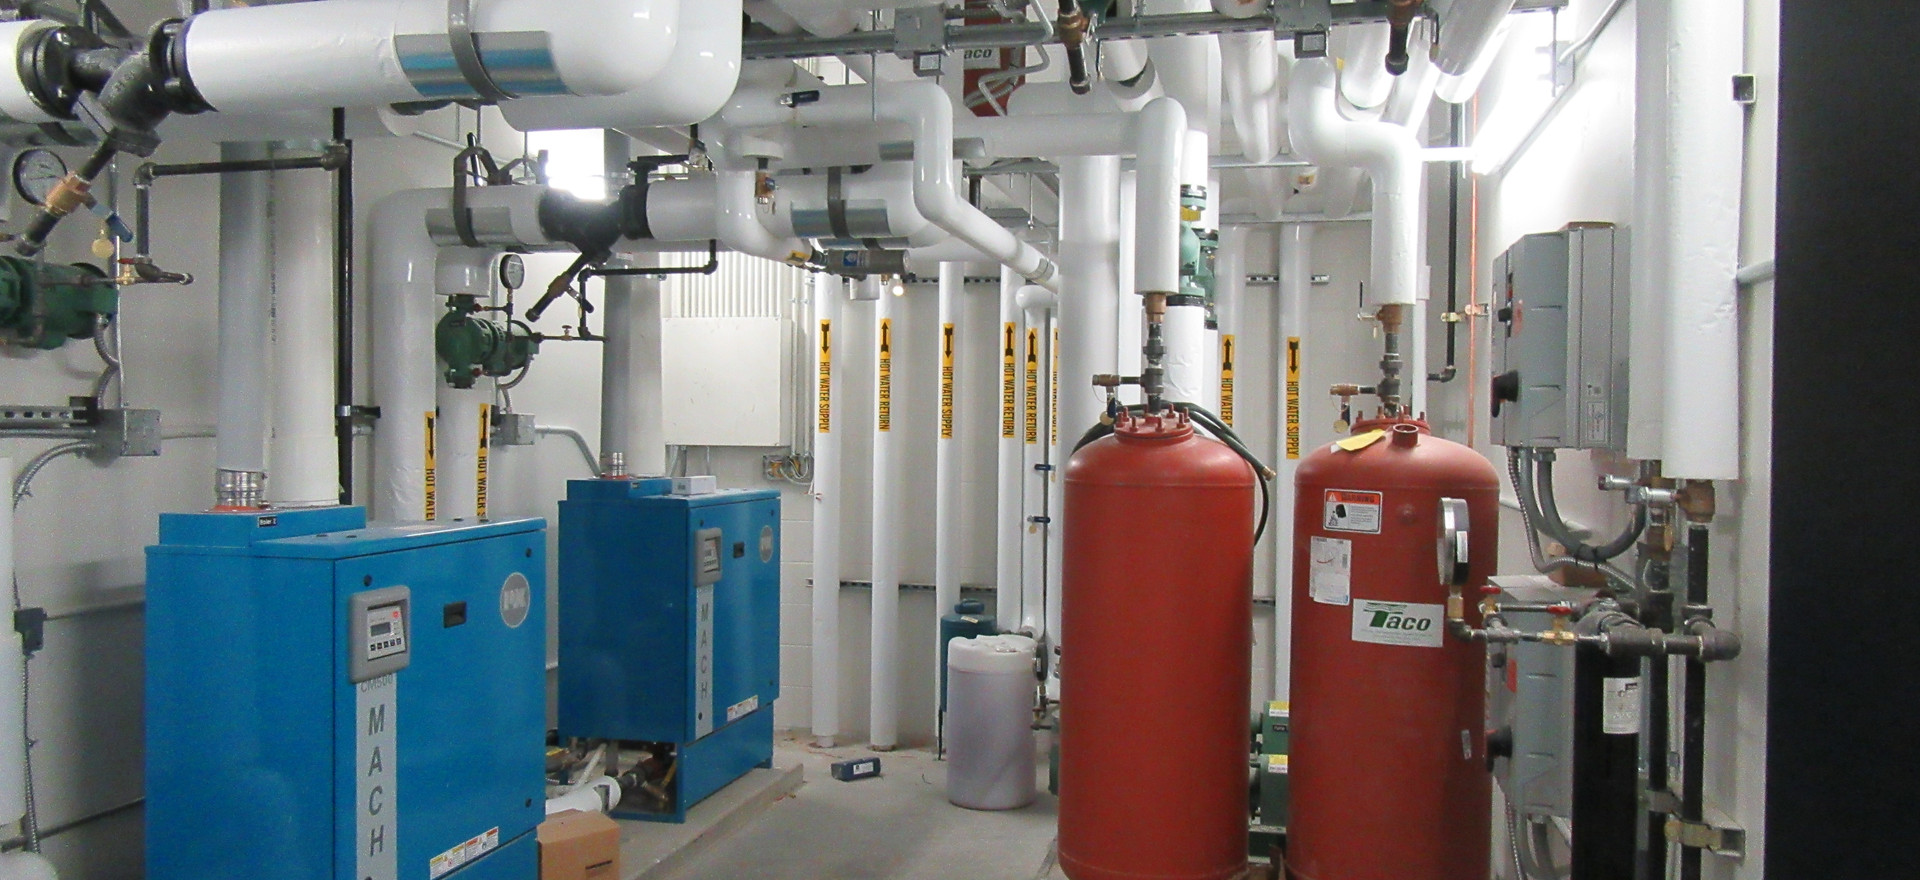 Boiler Room in an Auto Dealership